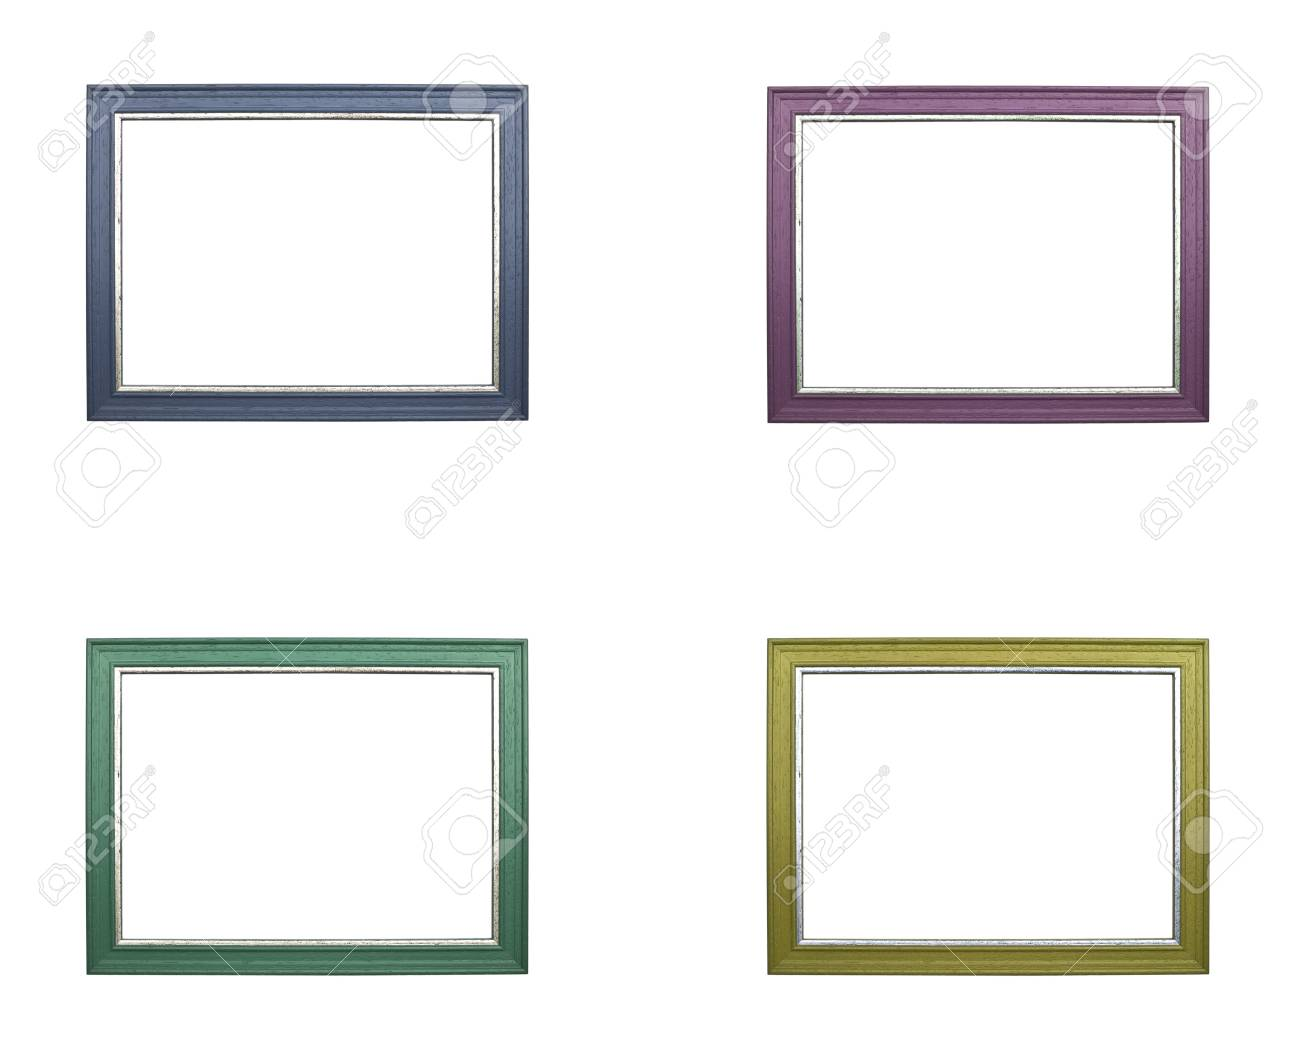 535459c32904 the set of colorful frames isolated on white background Stock Photo -  17708808